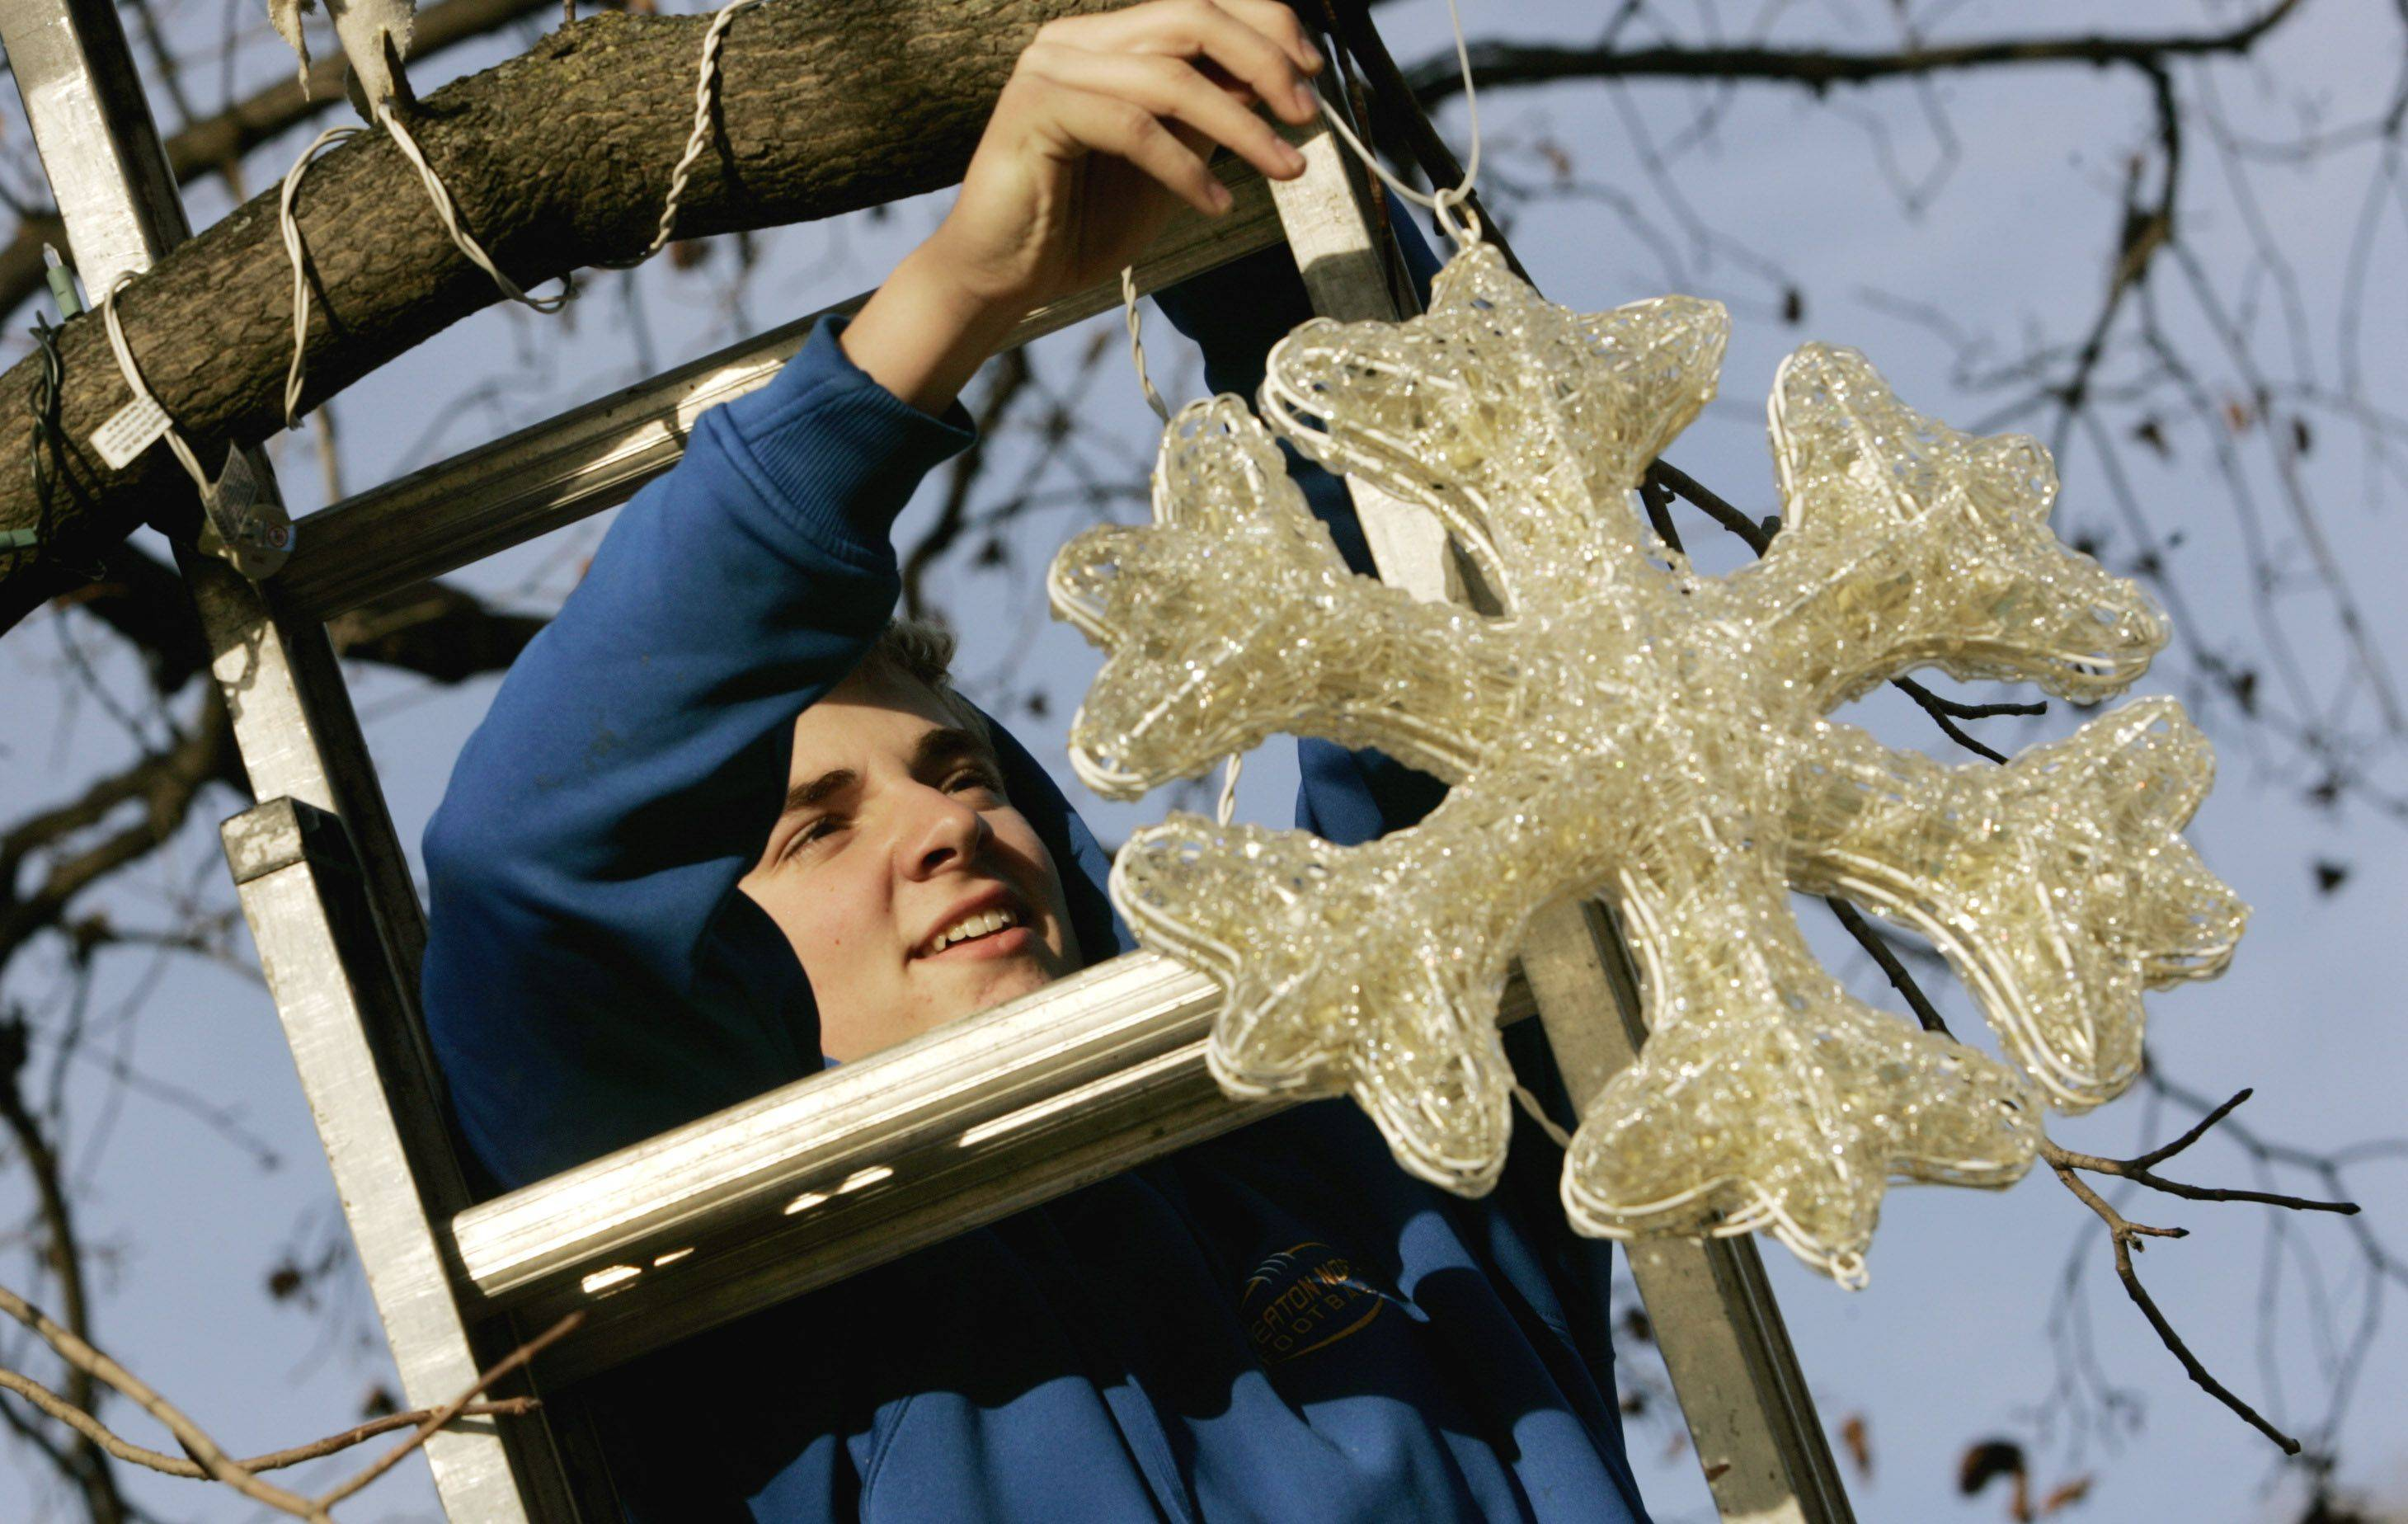 Jesse Dean of Wheaton hangs Christmas lights on the tree in his front yard Sunday in Wheaton.